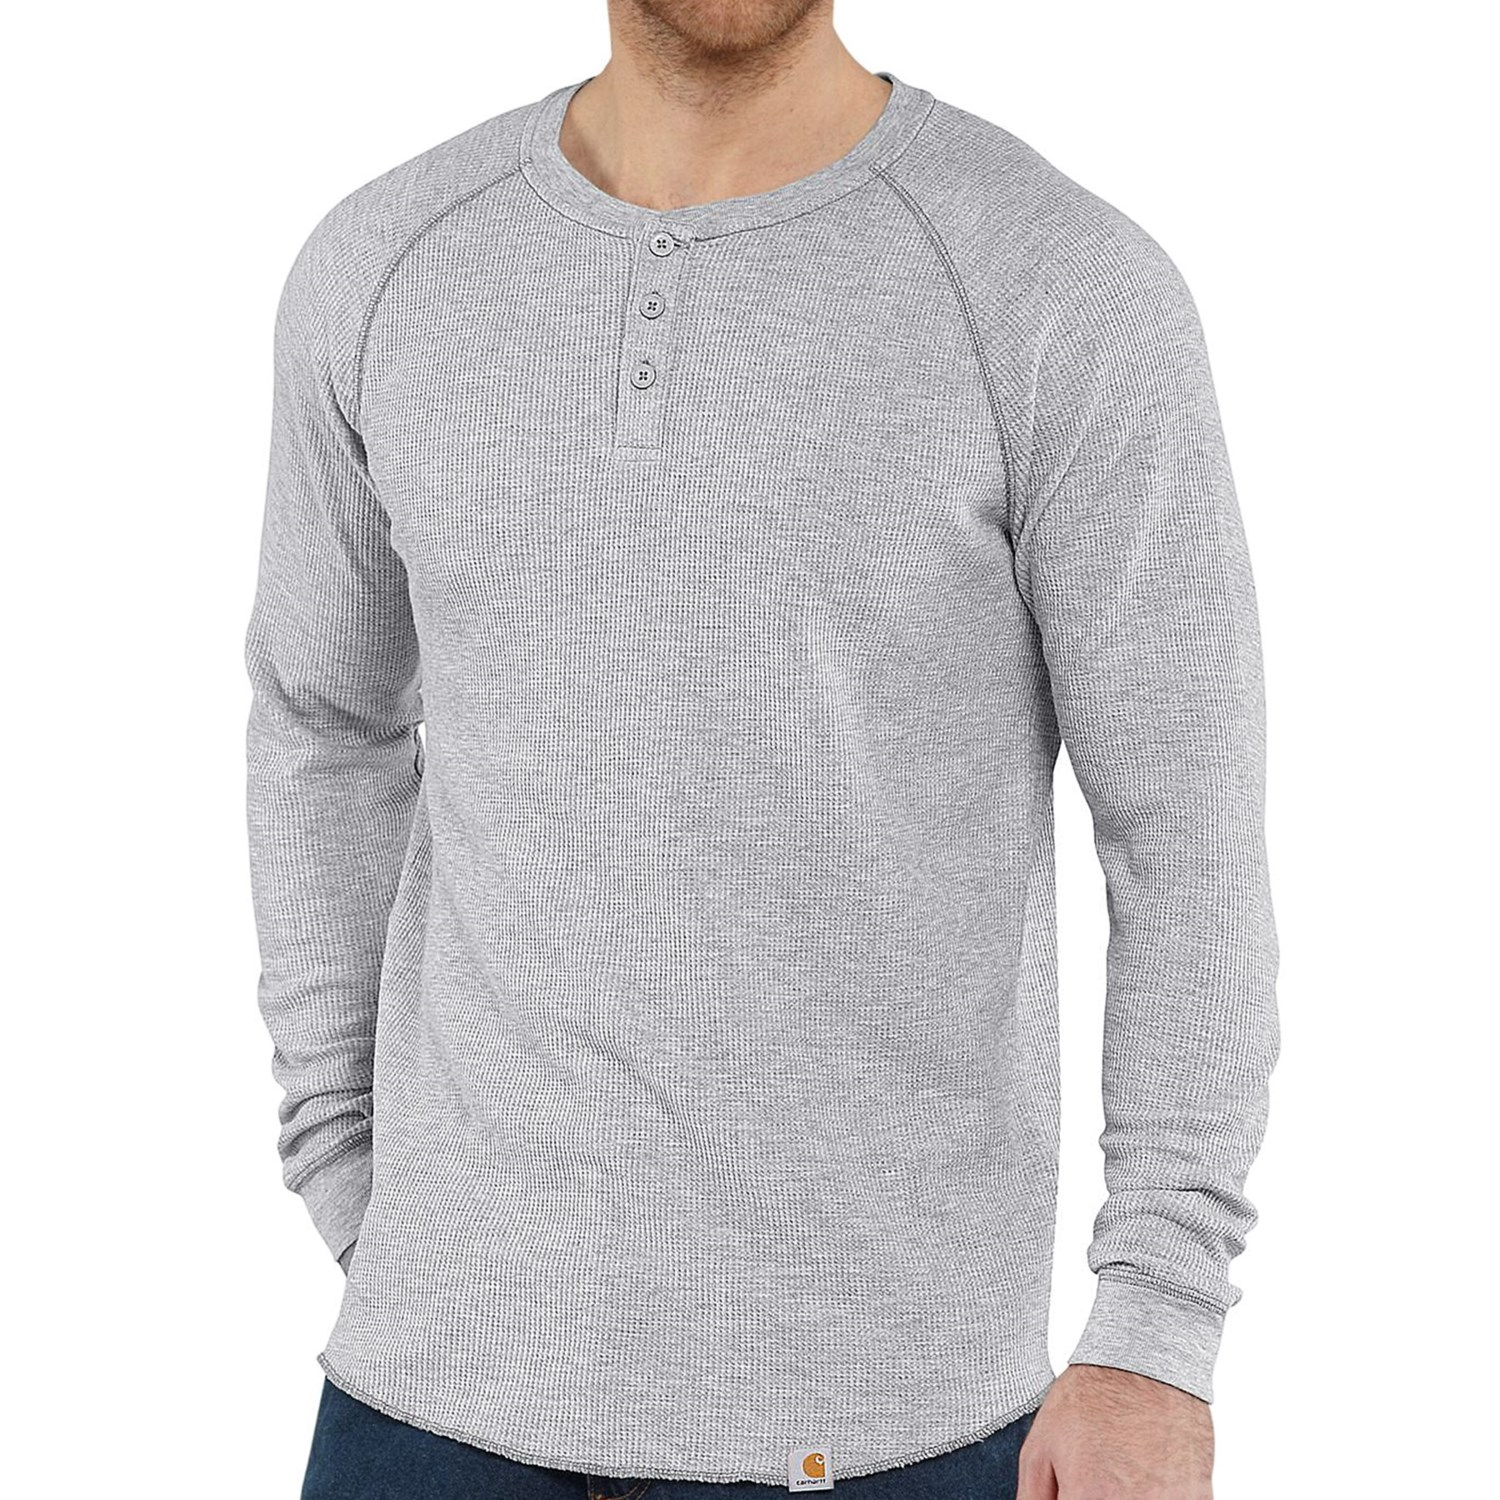 Carhartt thermal knit henley shirt for men 7248t for Men s thermal henley long sleeve shirts